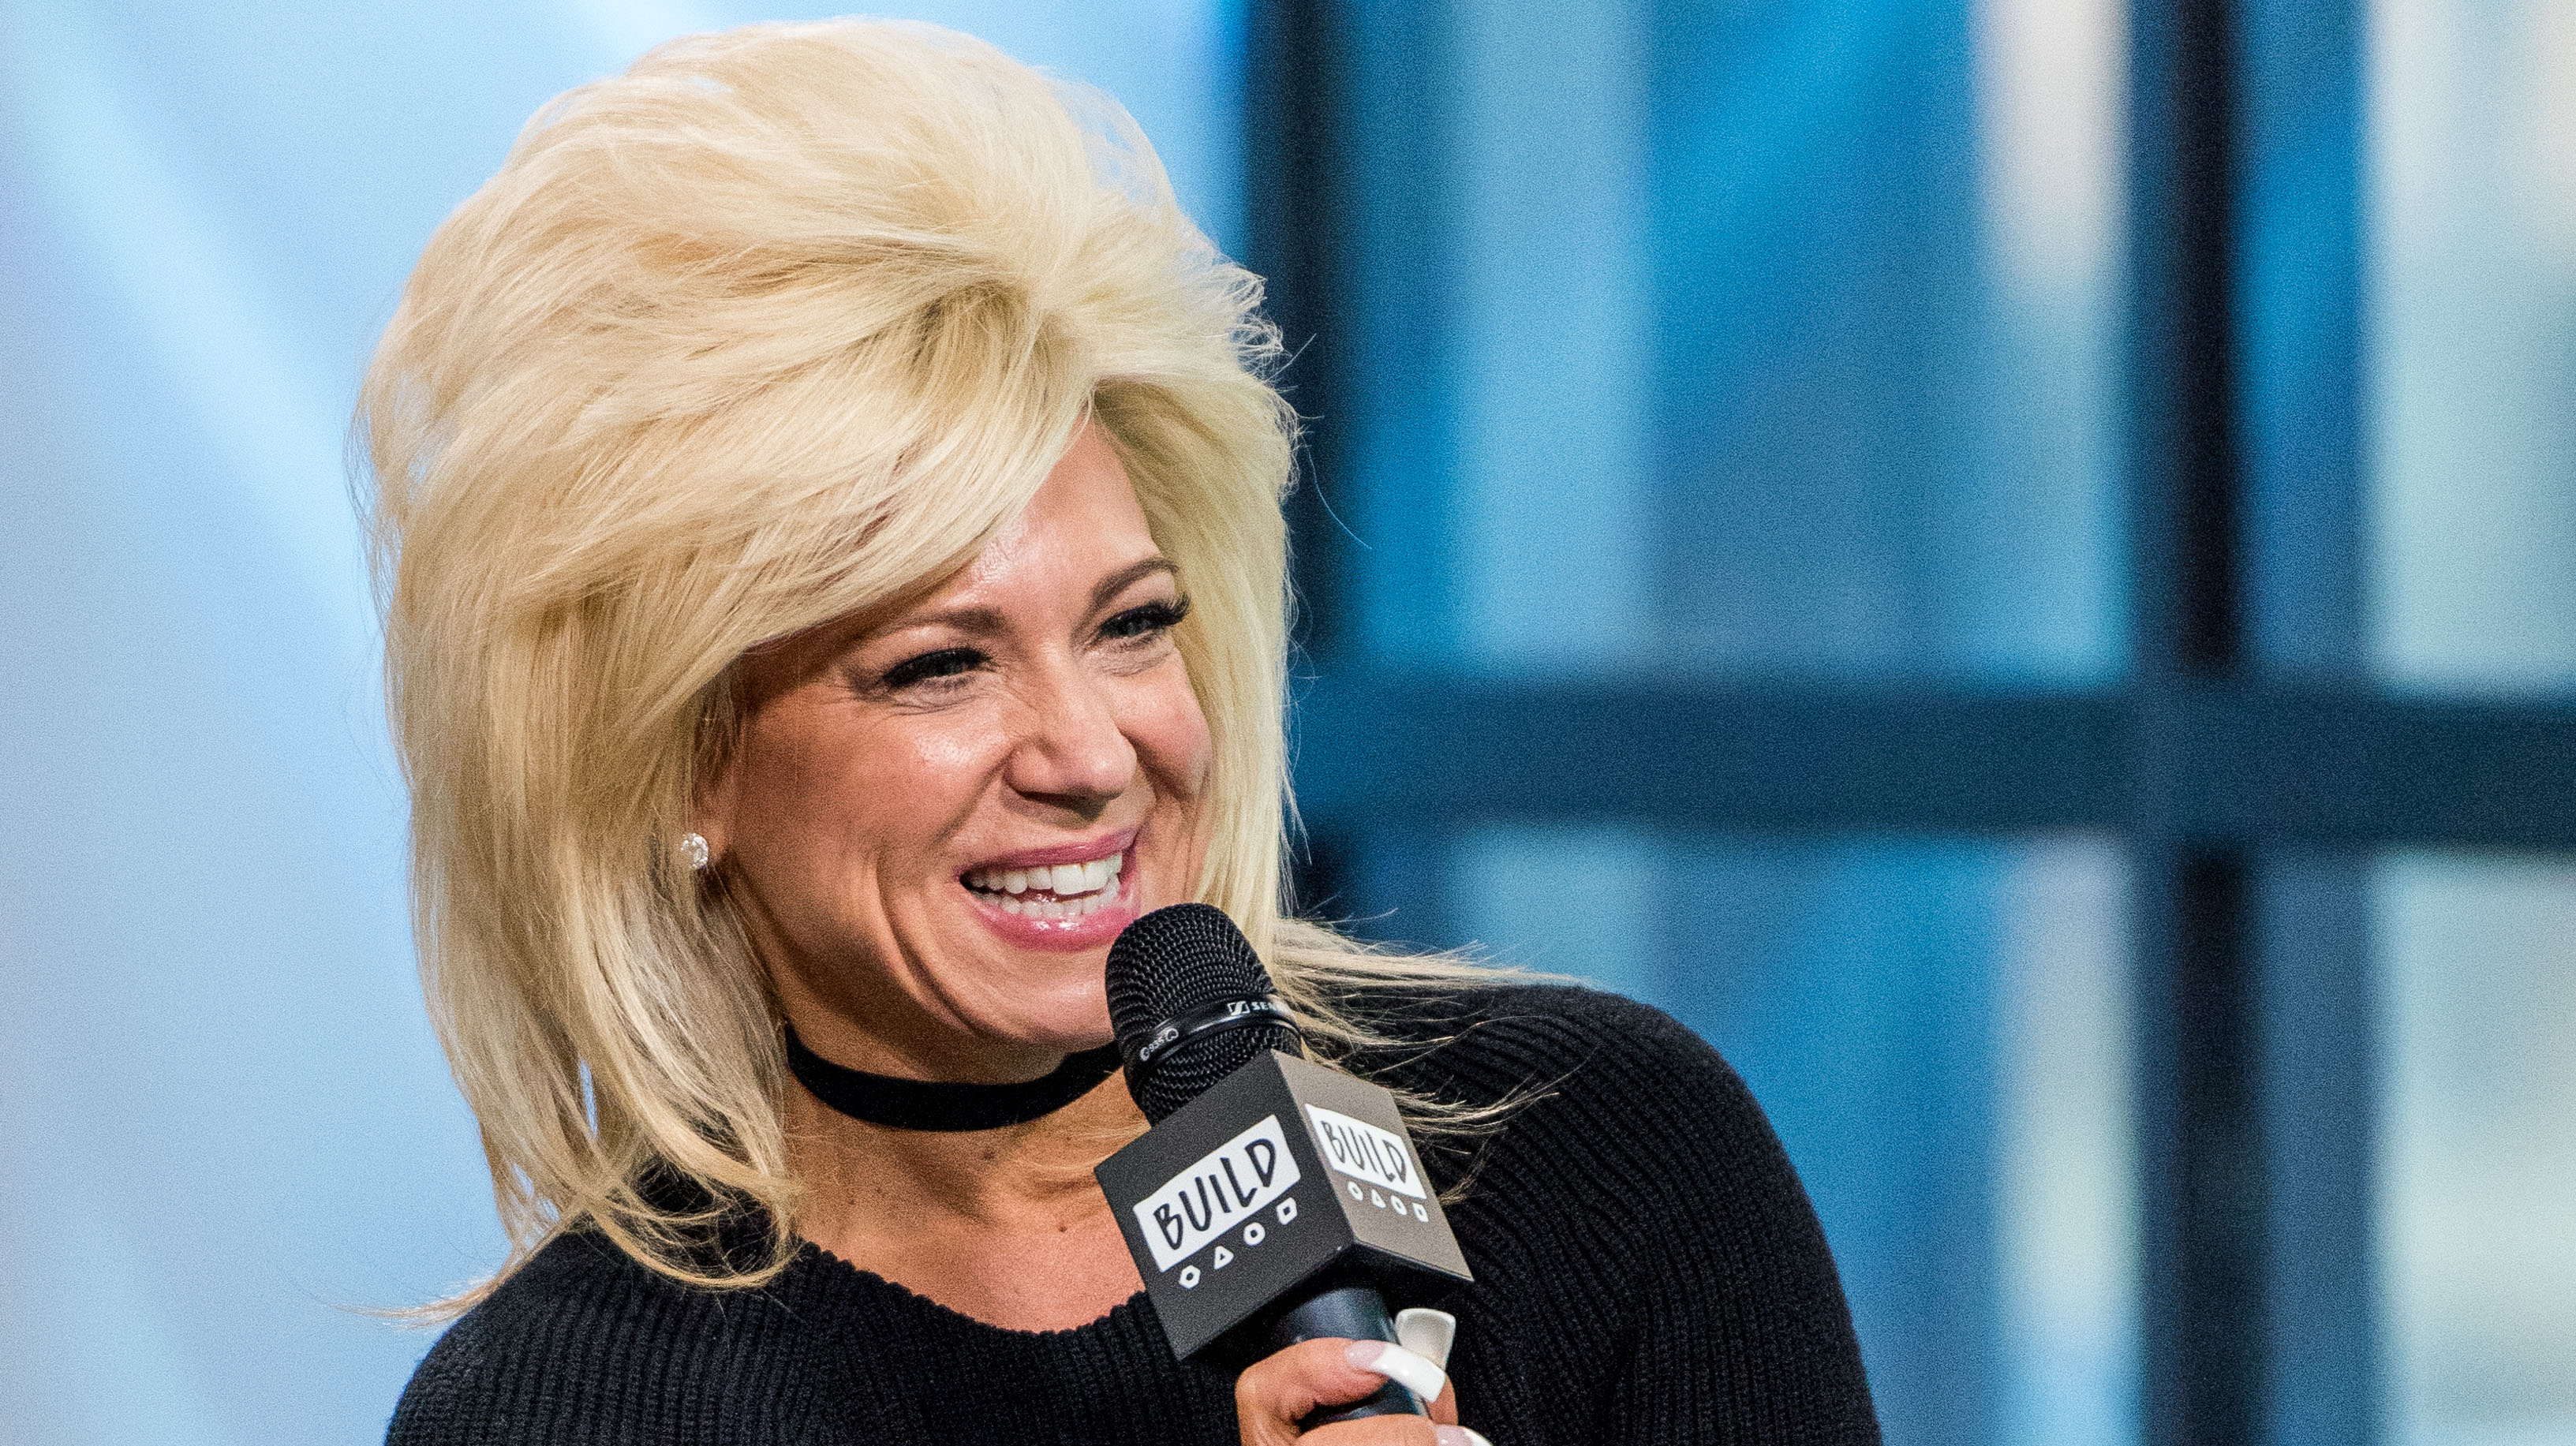 How Much Does It Cost To Get A Reading From The Long Island Medium